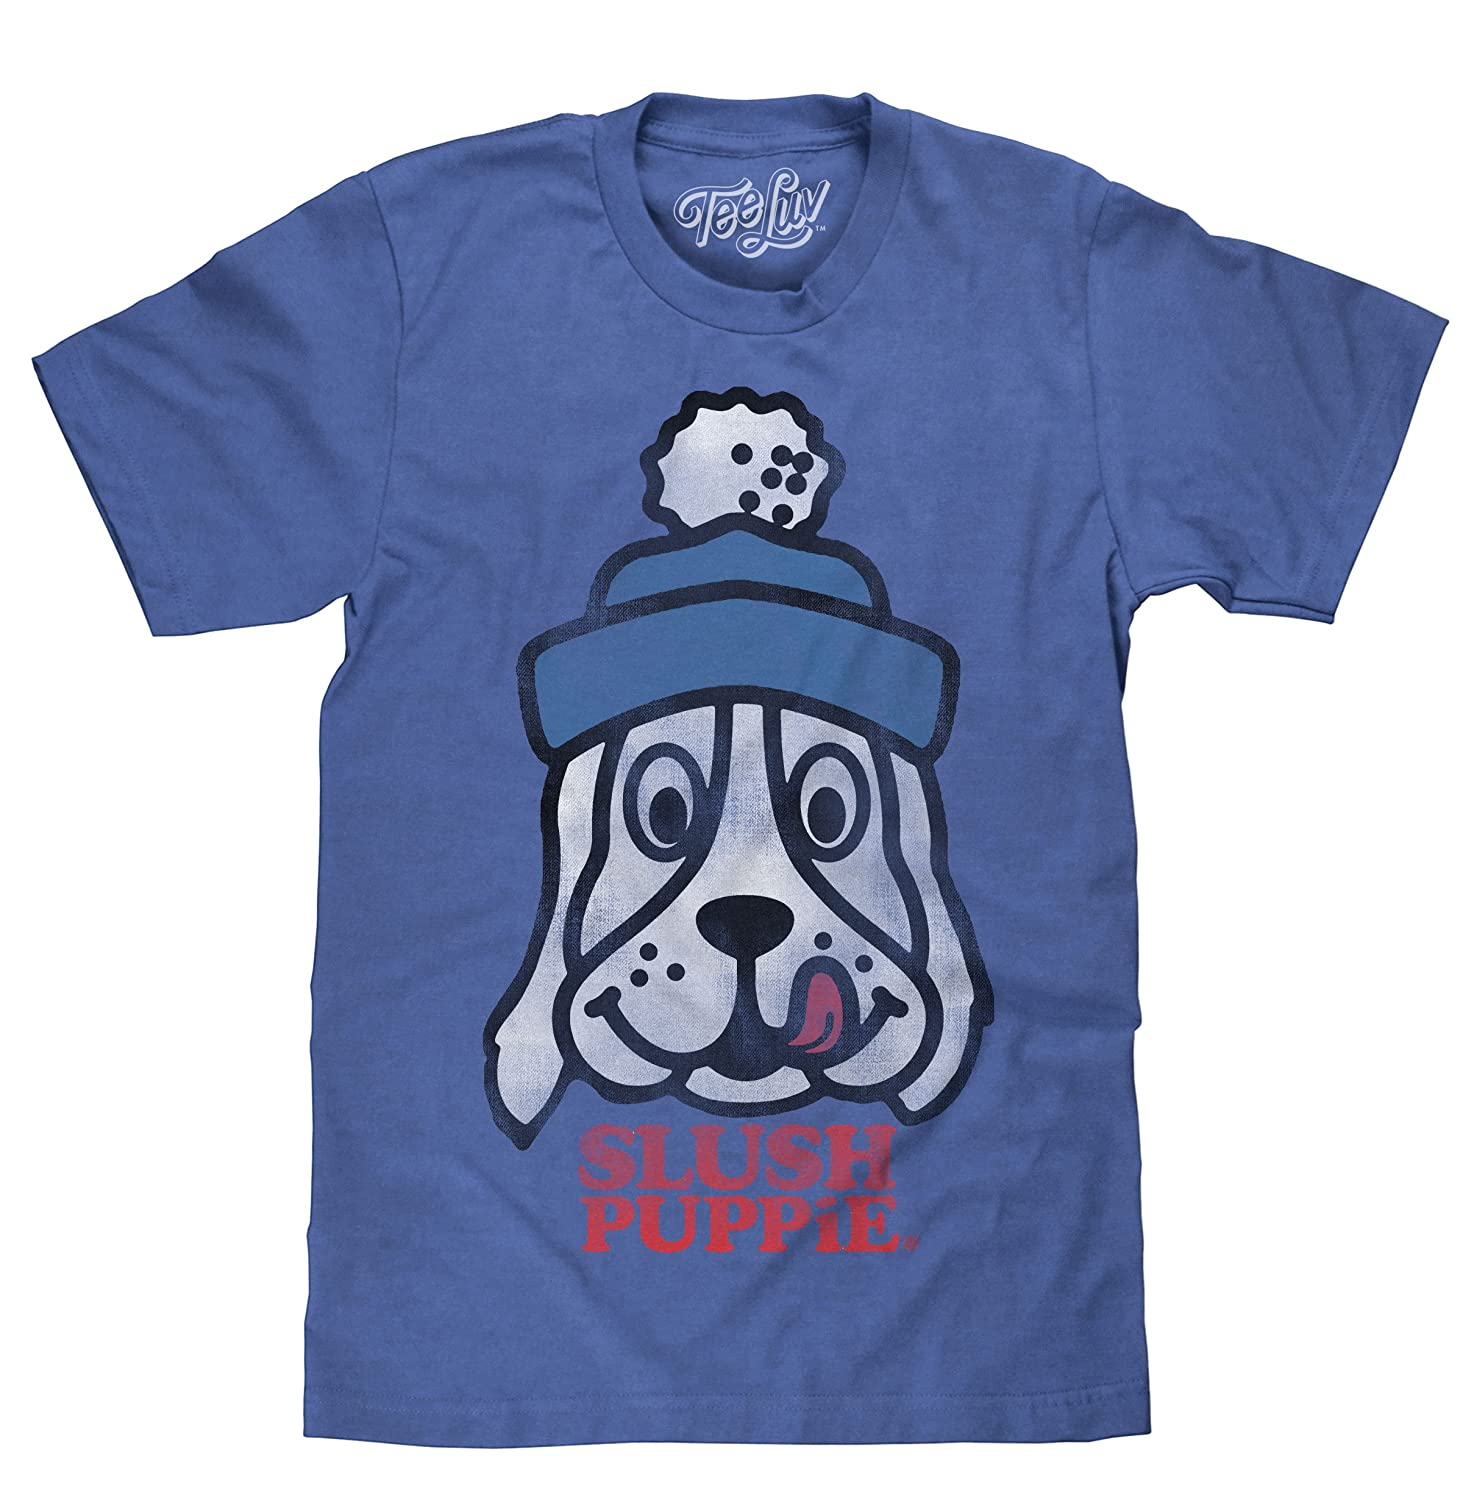 bf373c0b 50% Cotton/50% Polyester YOUR FAVORITE NEW TEE WITH A COOL RETRO LOOK:  Enjoy the nostalgia of the Slush Puppie cartoon dog mascot - printed on the  softest ...